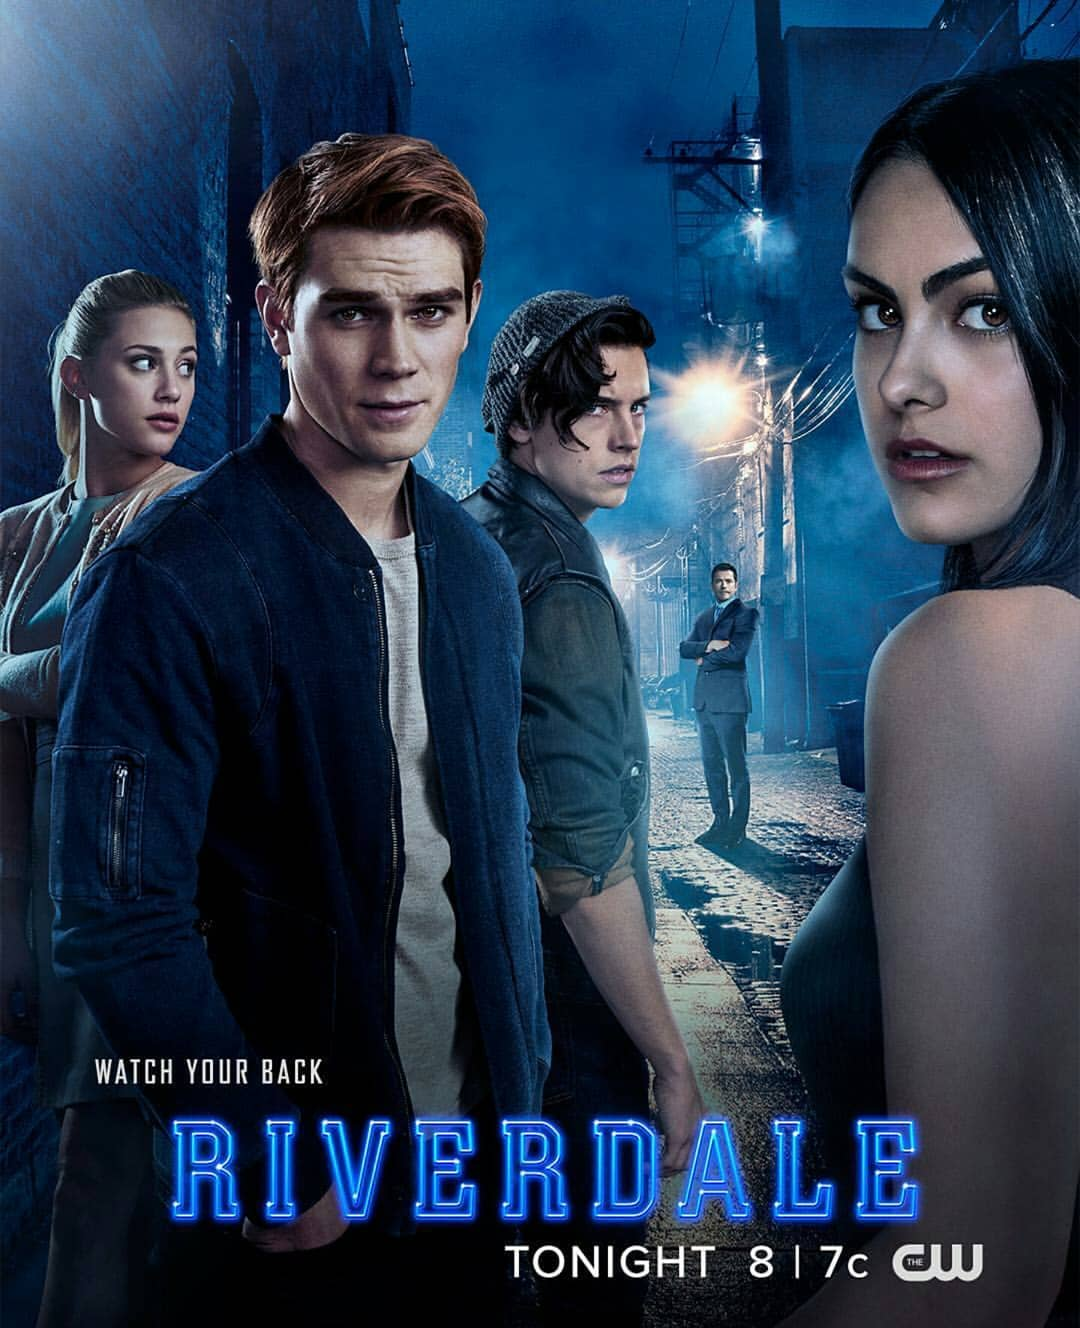 Riverdale mystery poster